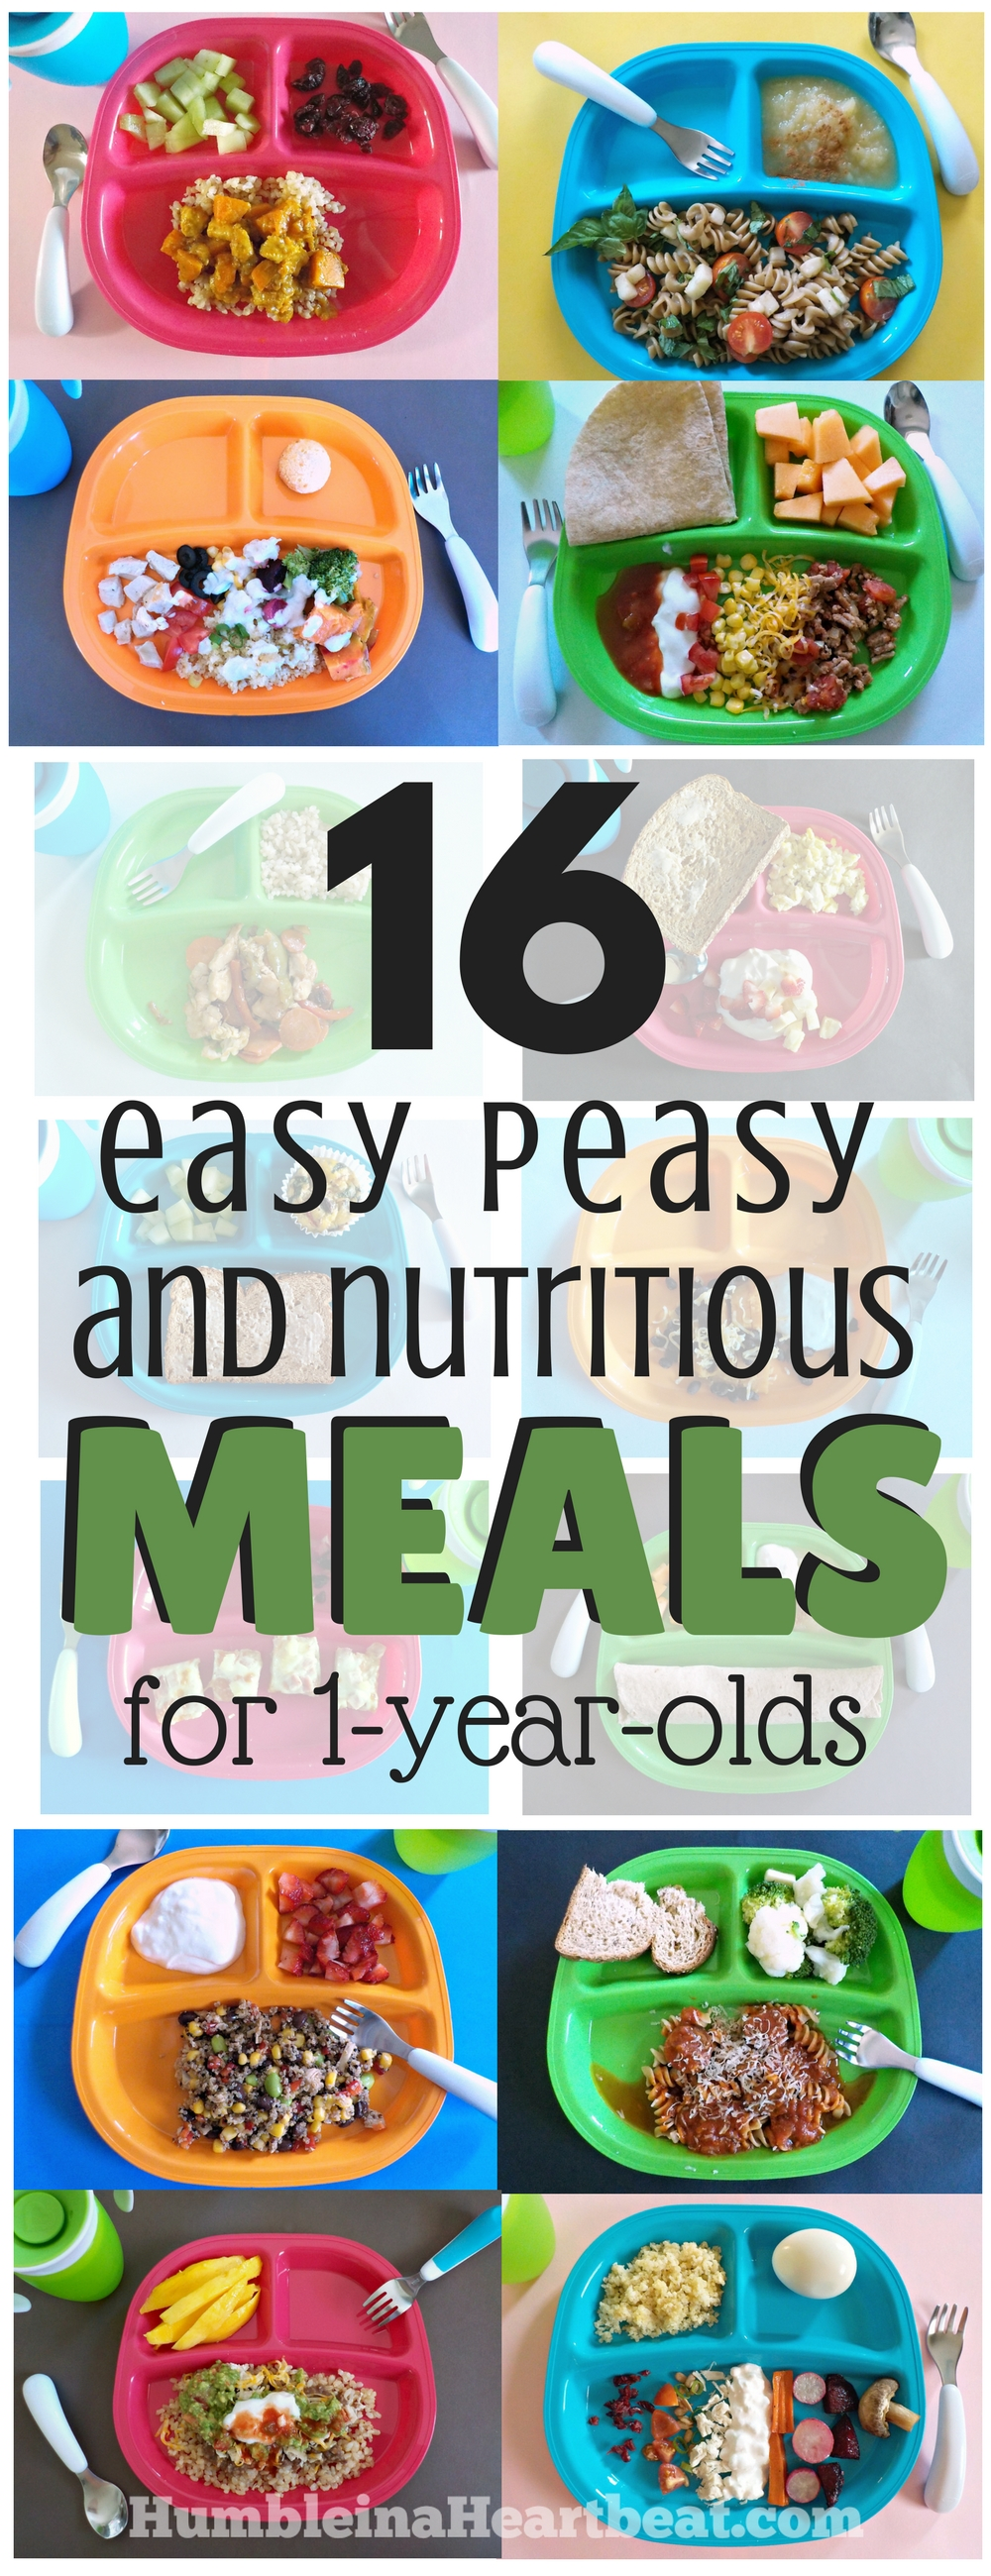 Nutritious Meal Ideas For 1 Year Olds That The Whole Family Can Eat